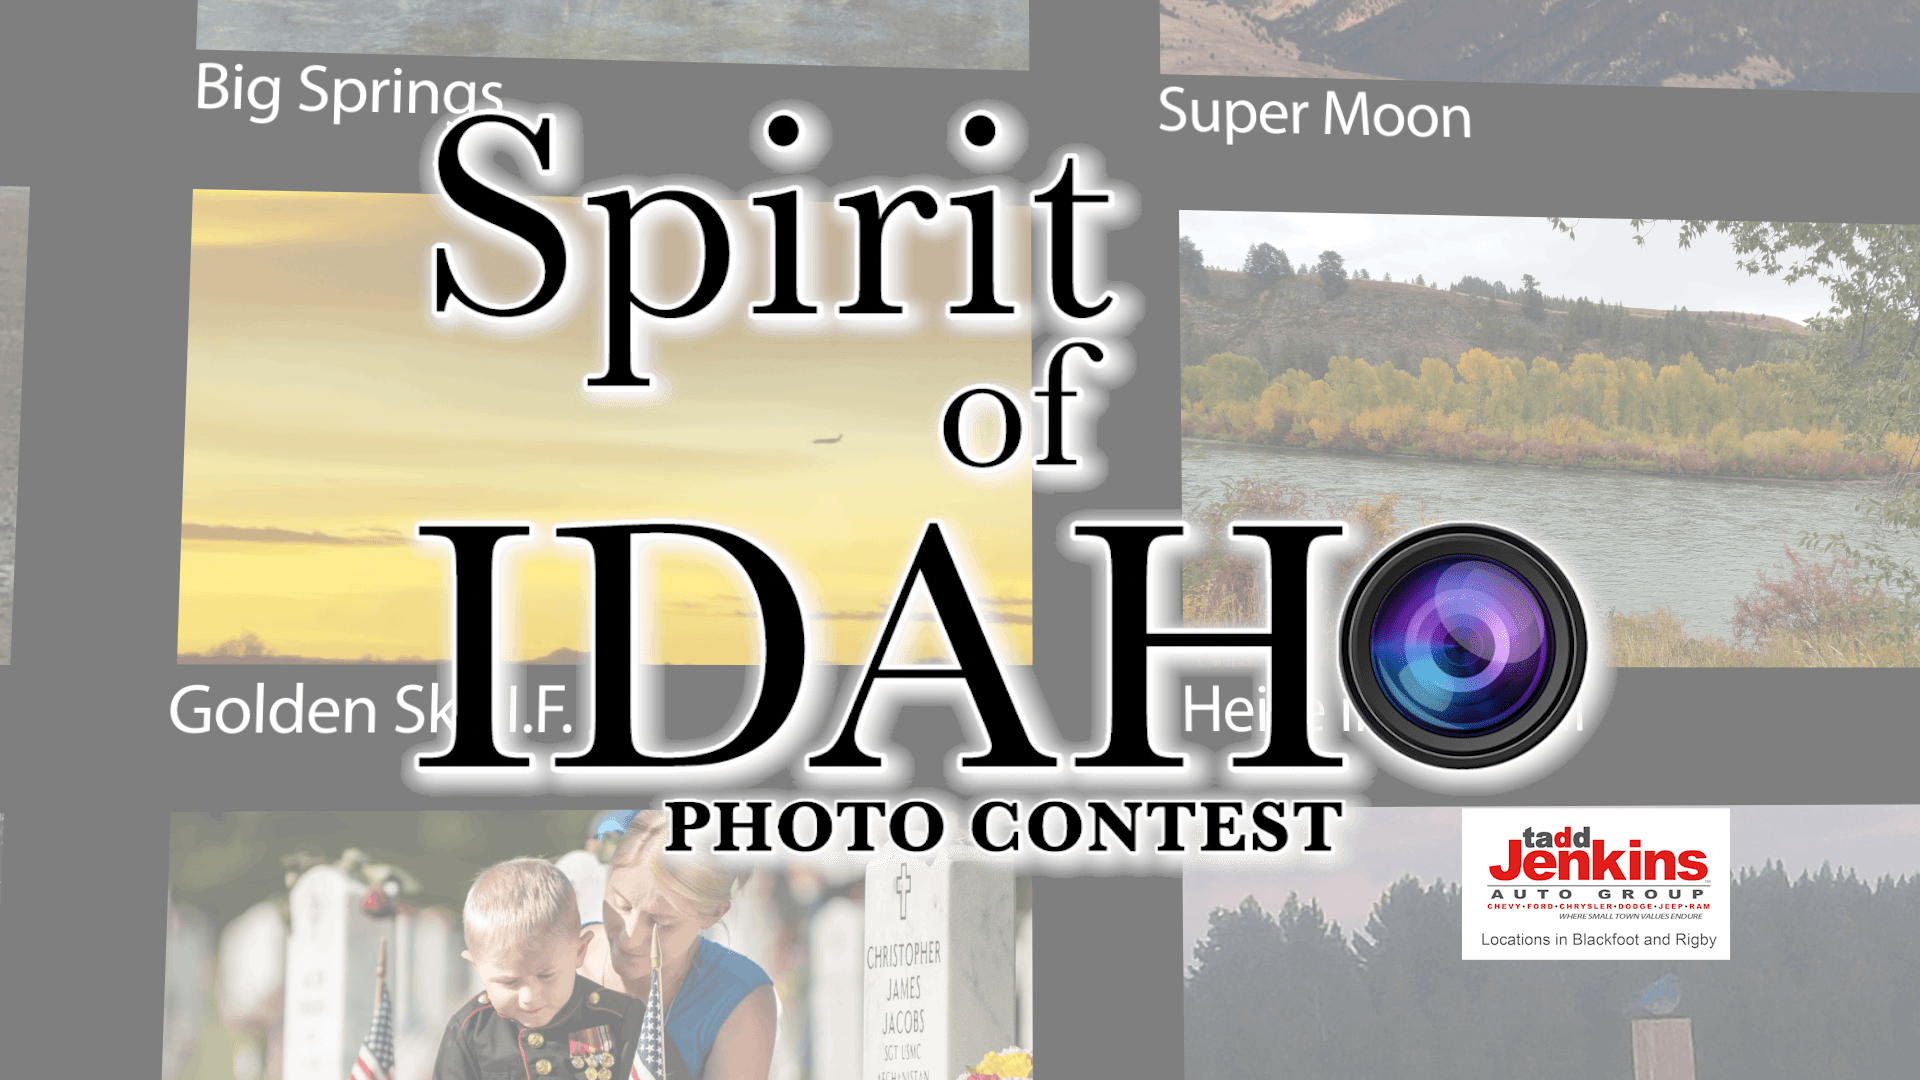 Enter Your Photo Showing The Spirit Of Idaho For A Chance To Win A Full Car Detail From Tadd Jenkins Auto Group